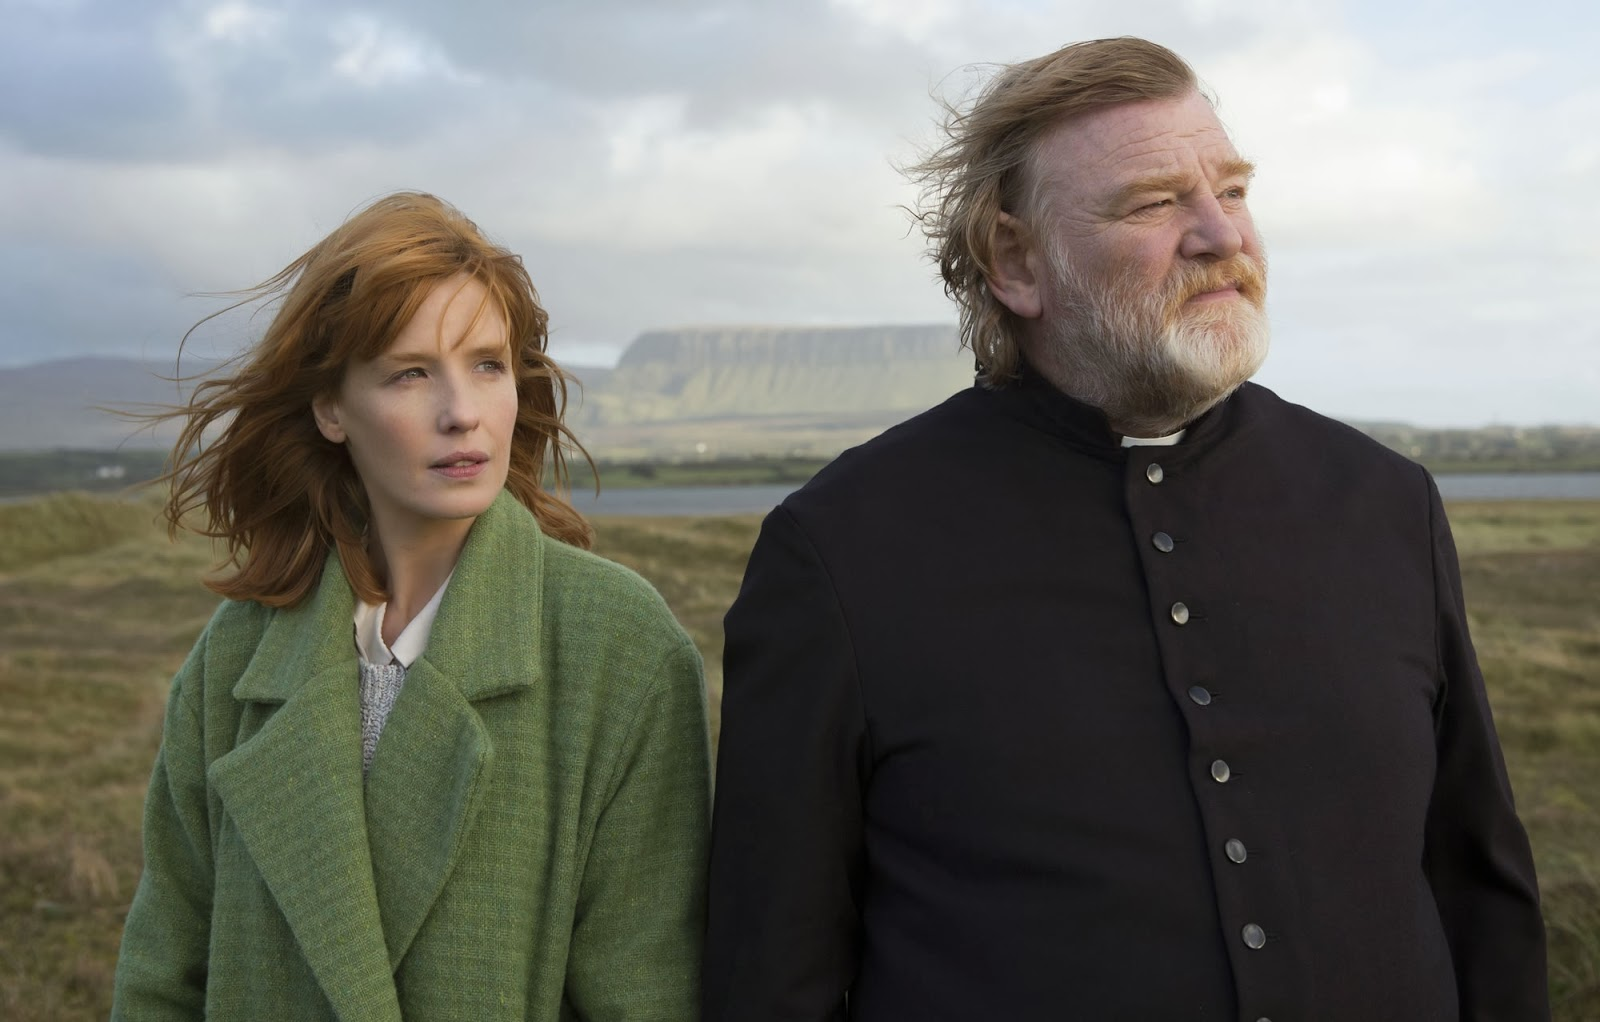 Kelly Reilly and Brendan Gleeson star in Steven's favorite movie of 2014 so far, Calvary.